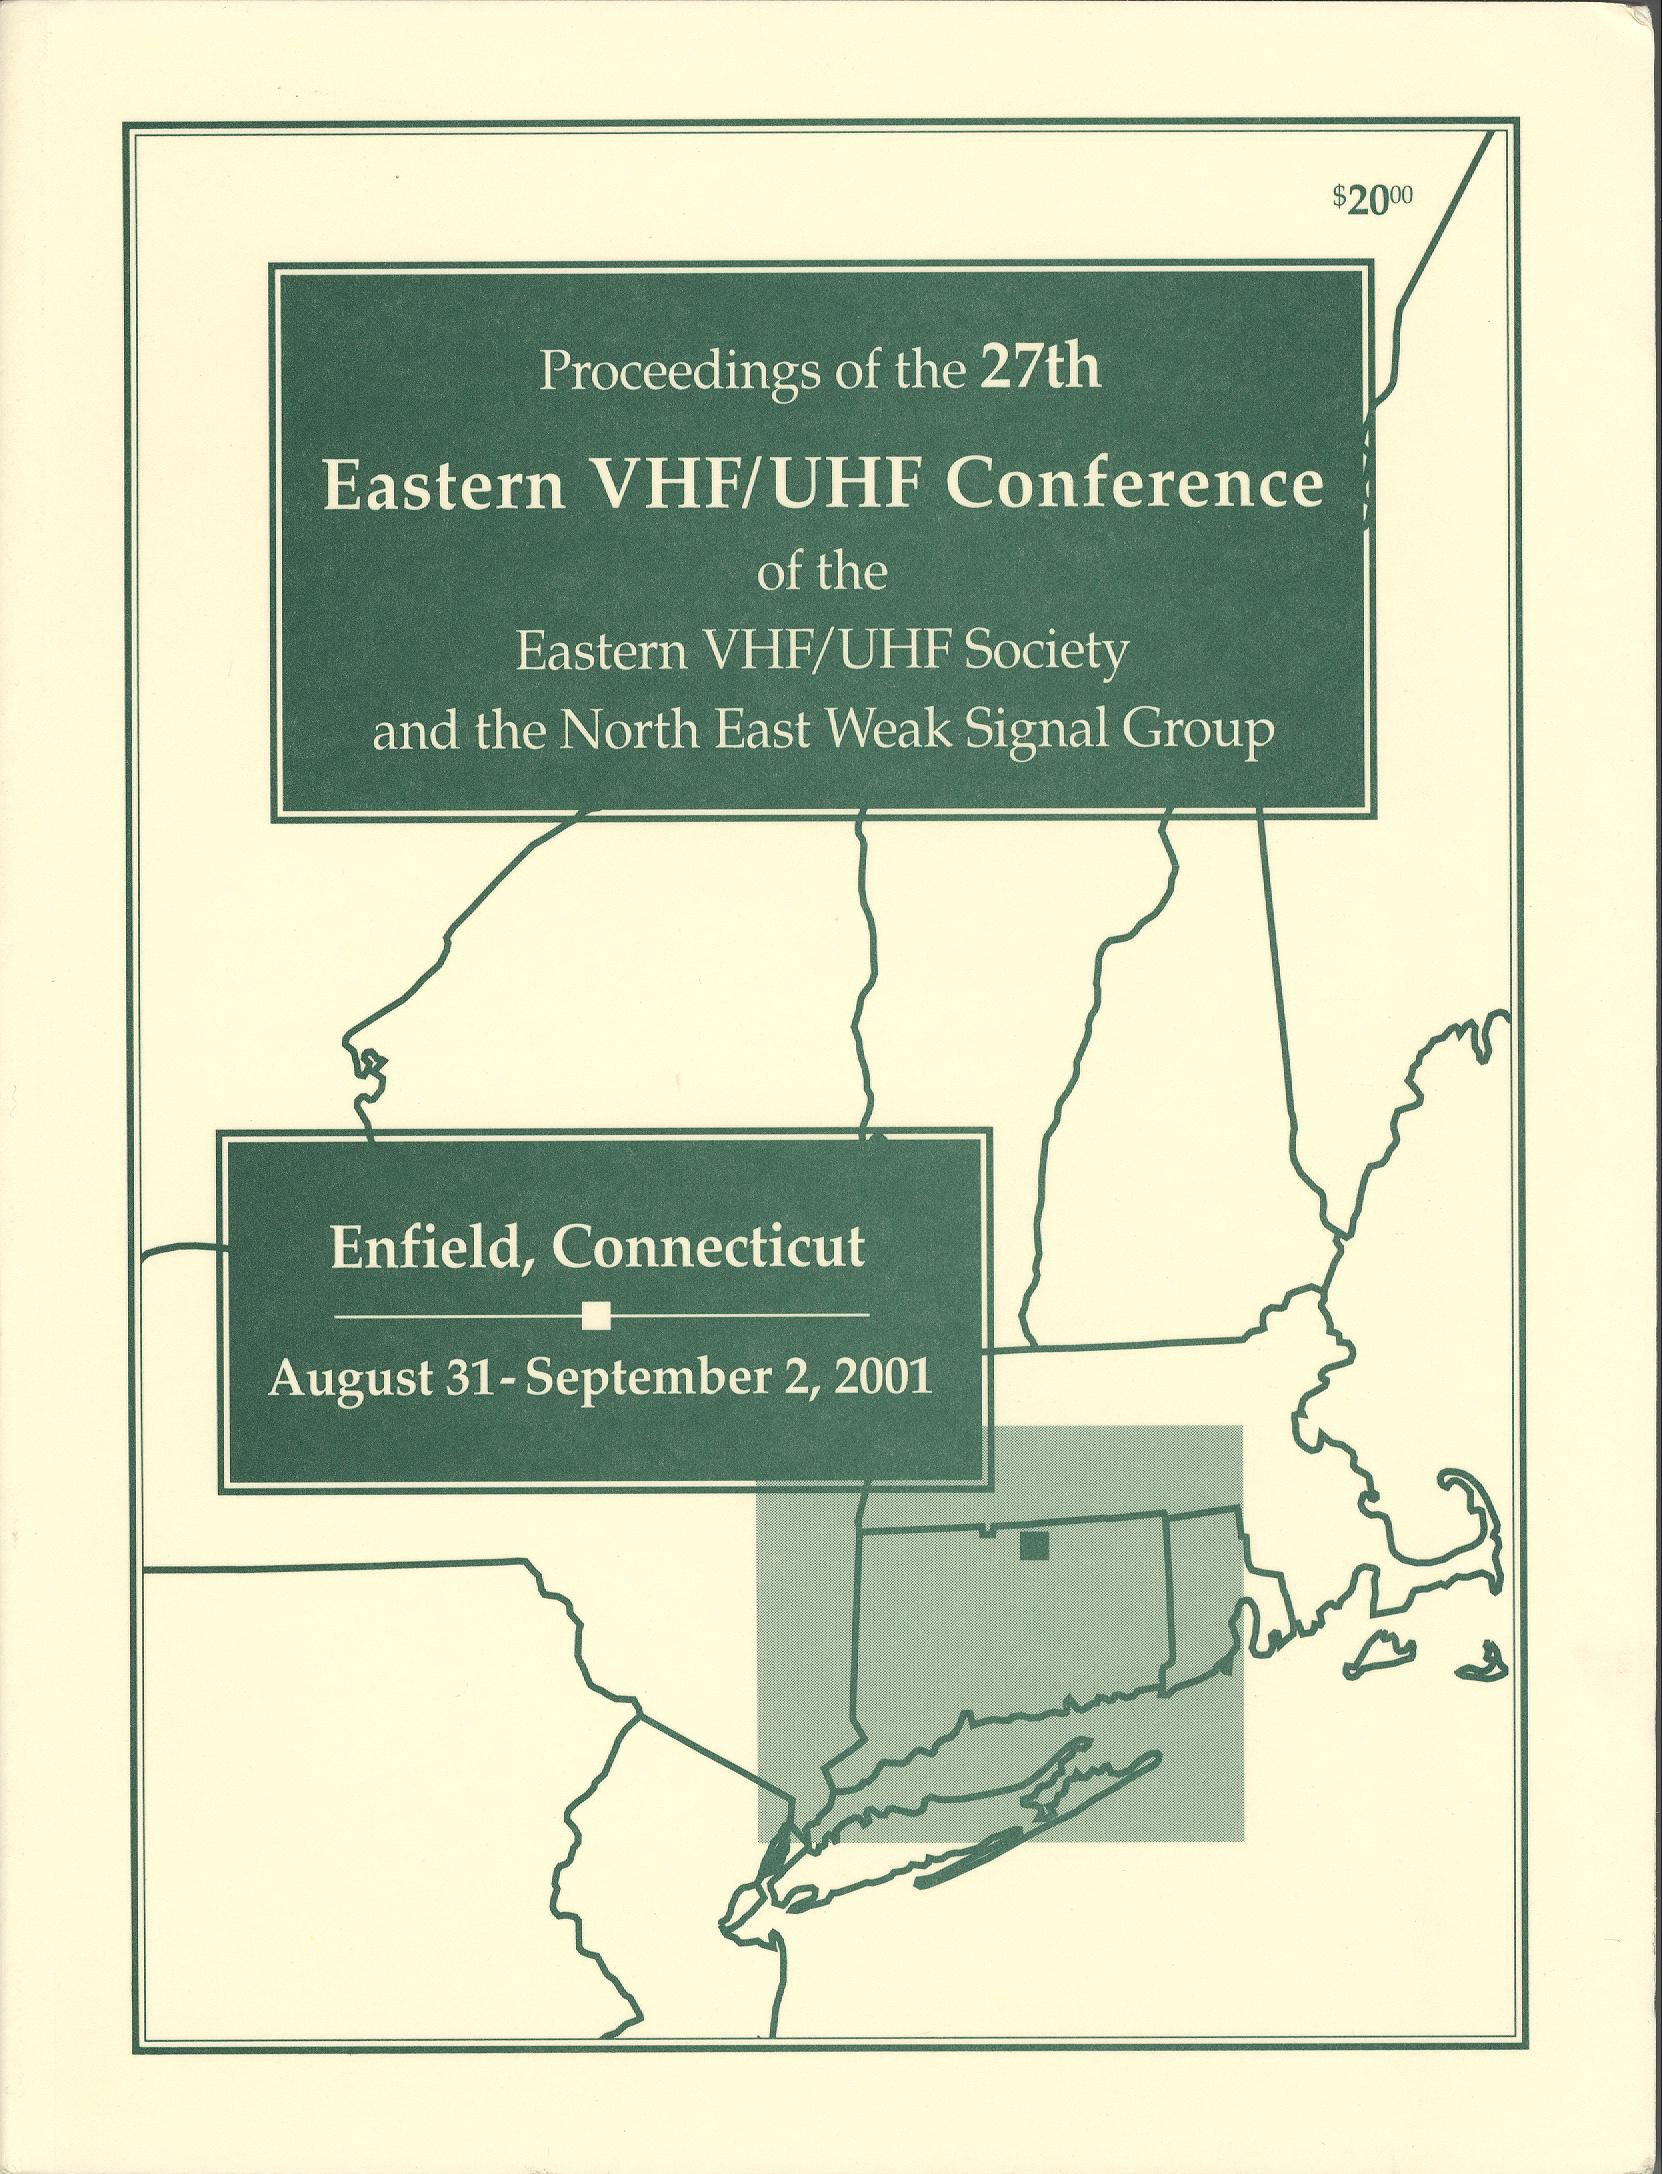 Proceedings of the 27th Eastern VHF/UHF Conference of the EASTERN VHF/UHF Society and the North East Weak Signal Group 2001